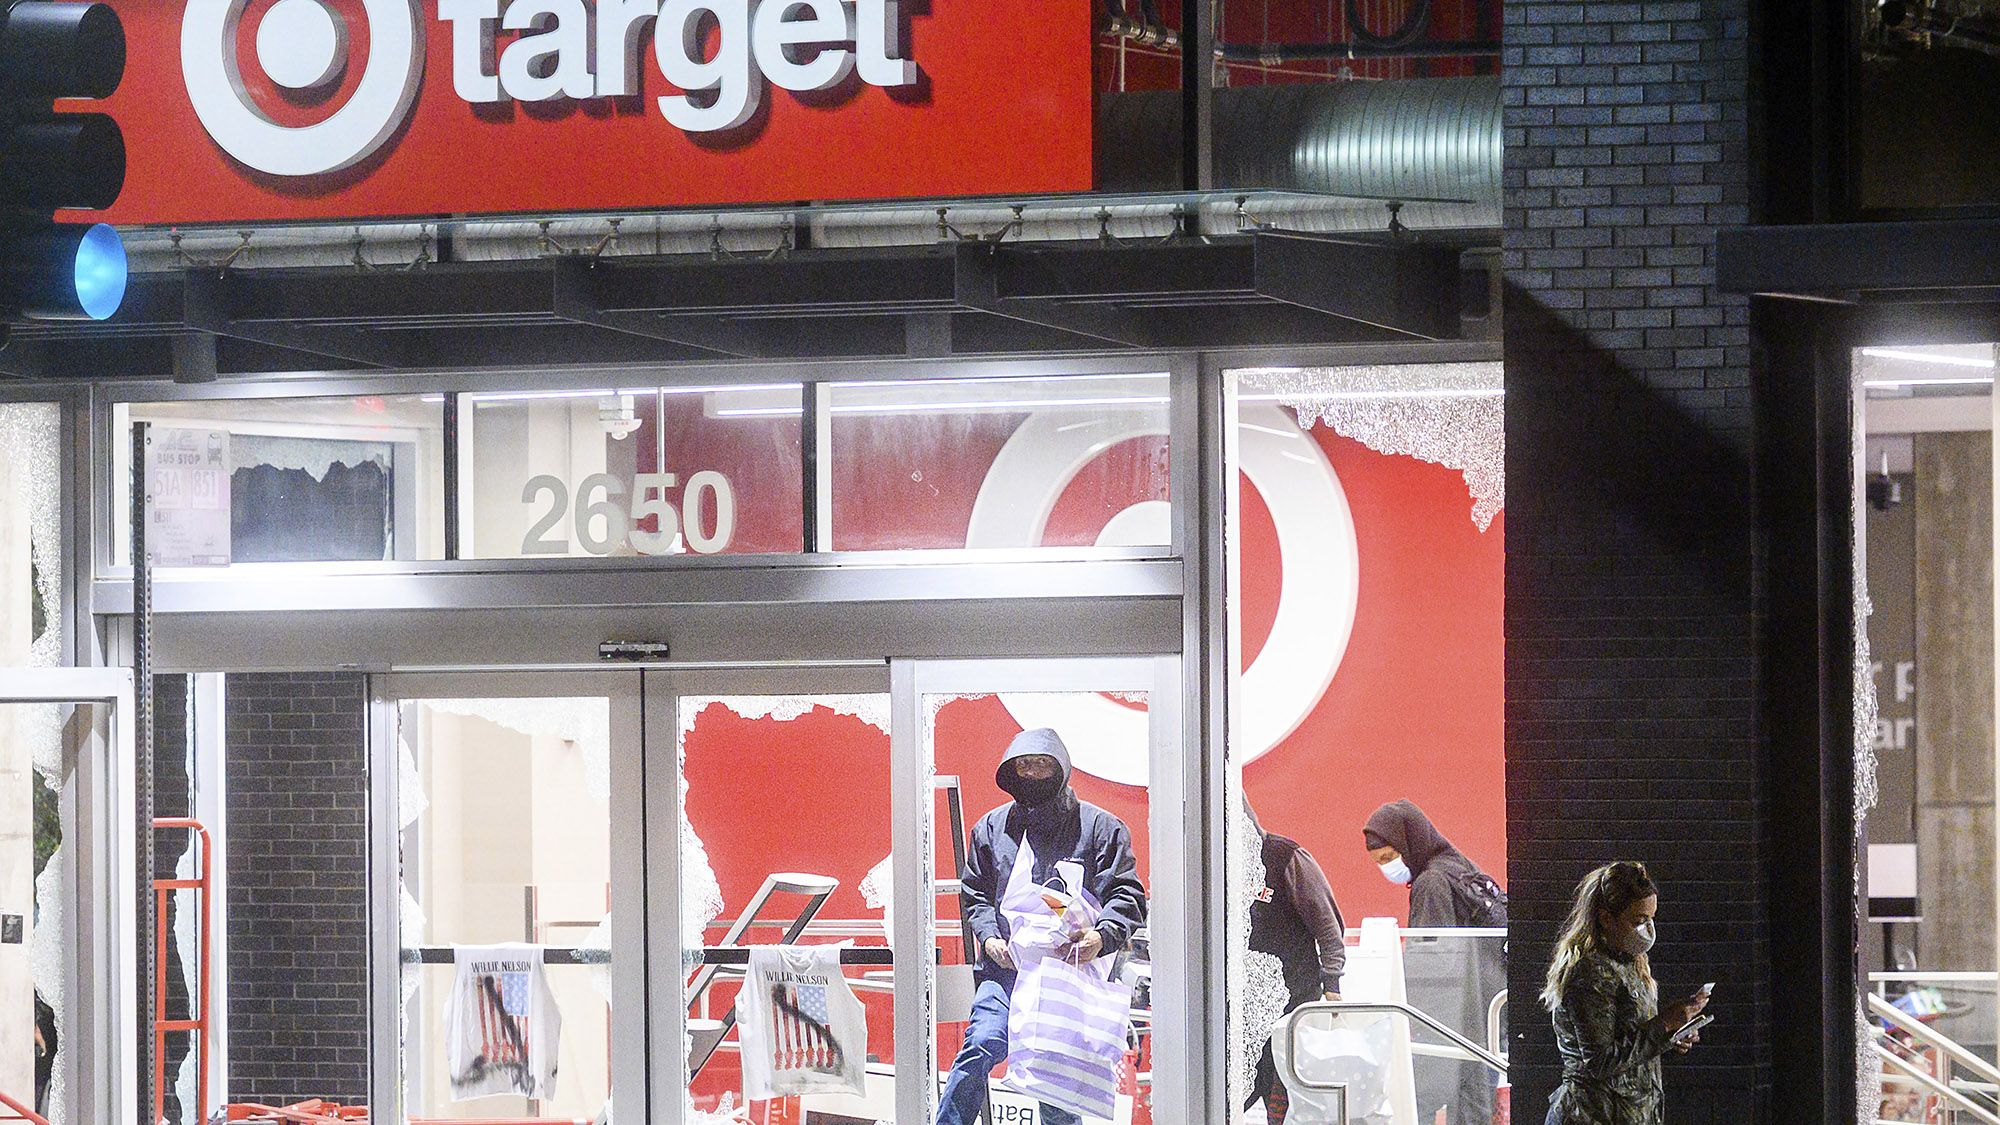 Fox Biz News Target Closes 175 Stores Nationwide After Minneapolis Protests In 2020 Minneapolis Protest Minneapolis Protest